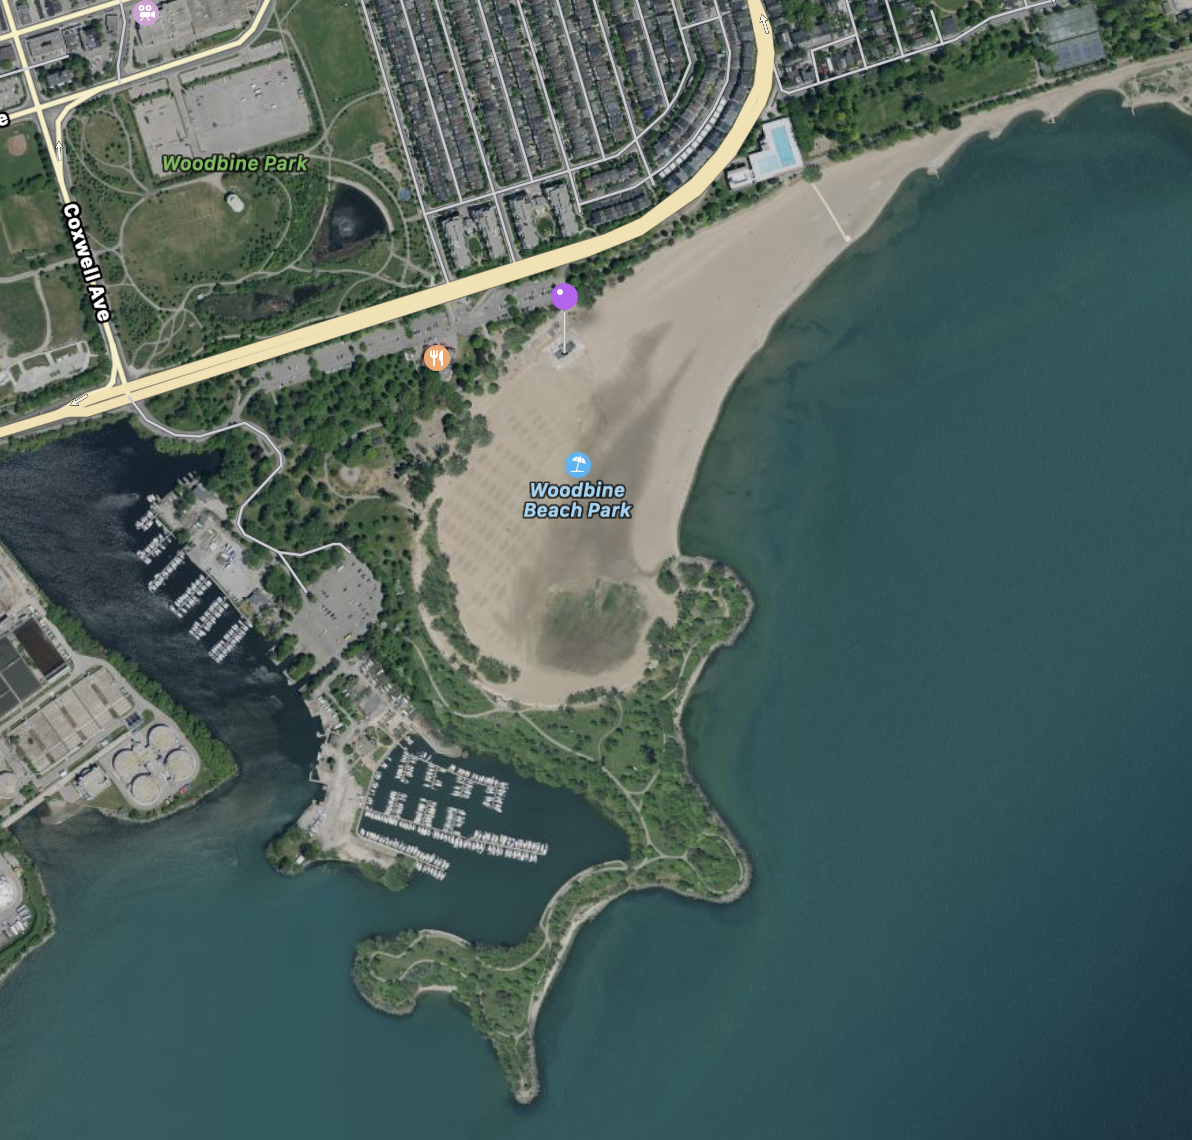 We'll be meeting in front of the Woodbine Bathing Station.